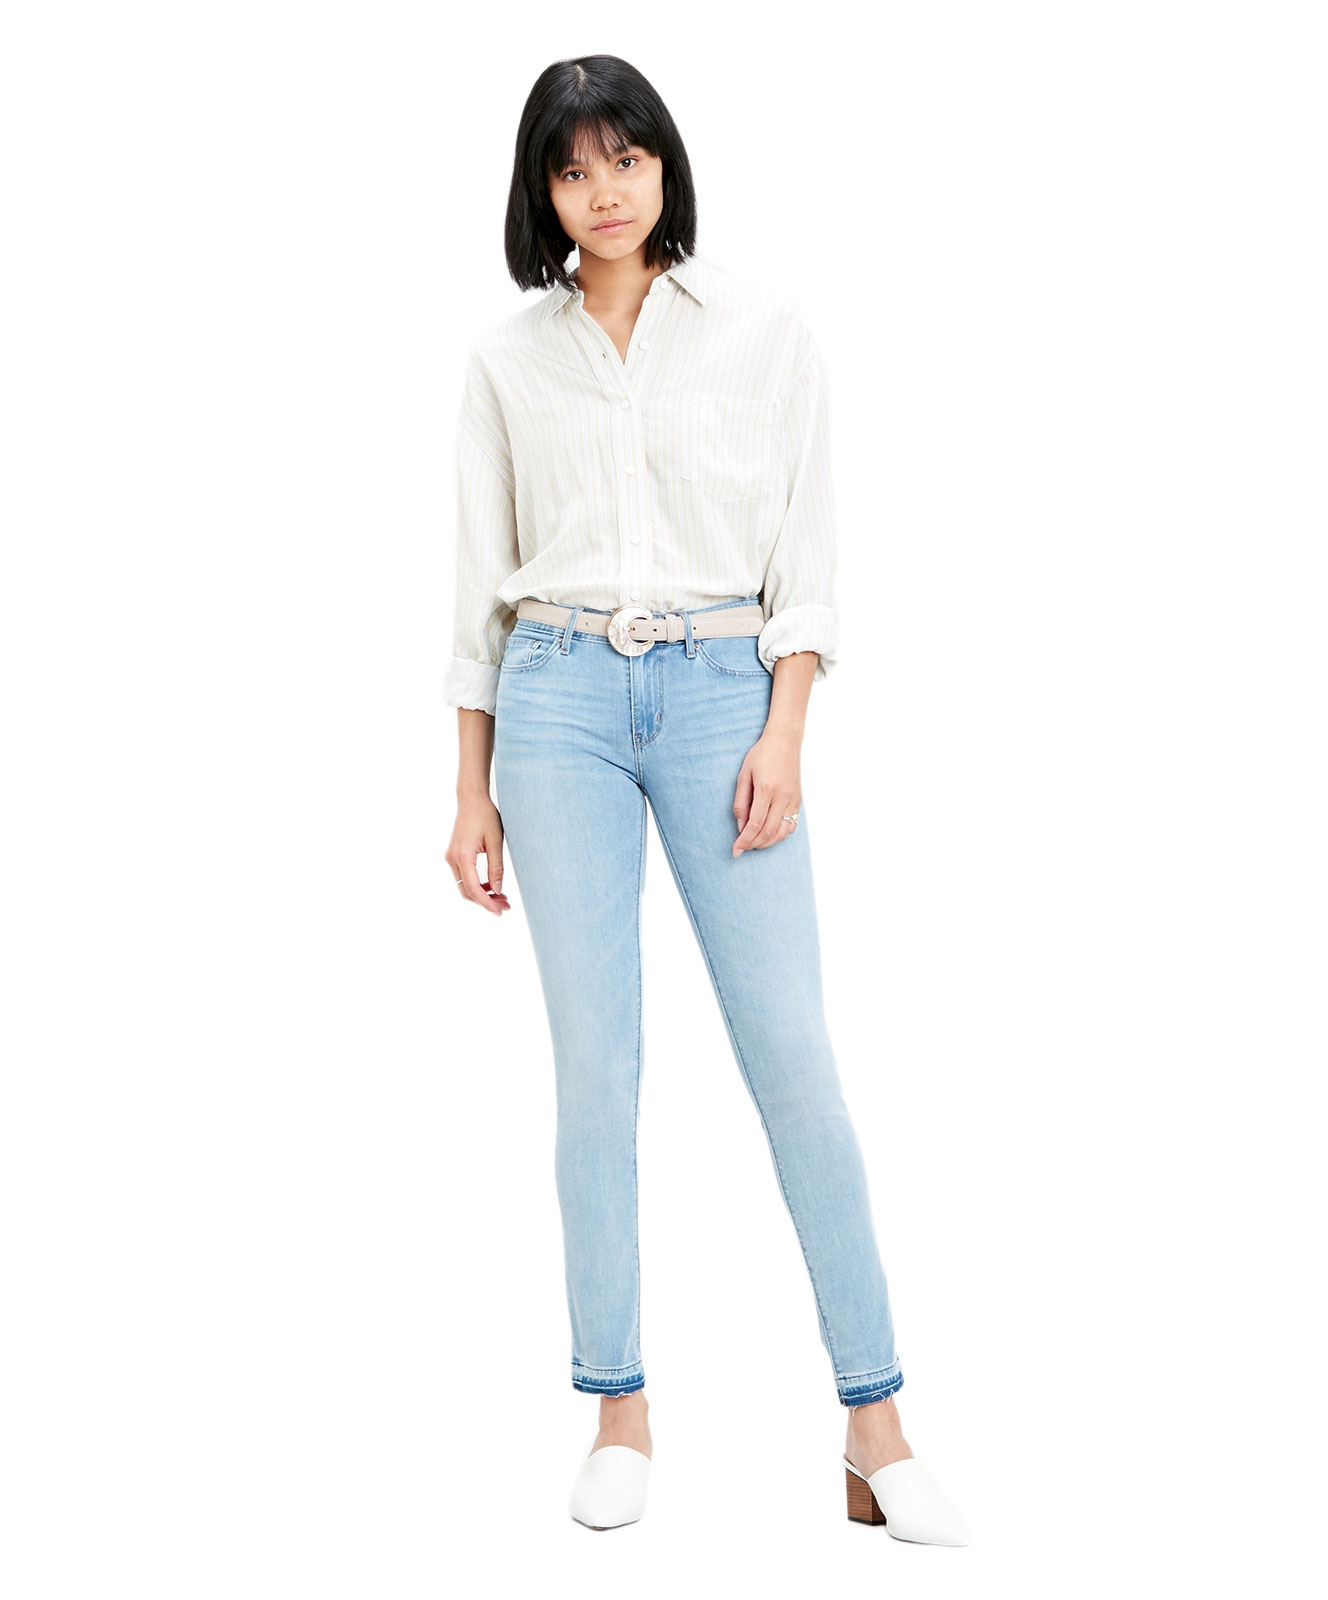 Hosen - Levi's Damen Skinny Jeans 711 in To The Wire  - Onlineshop Jeans Meile